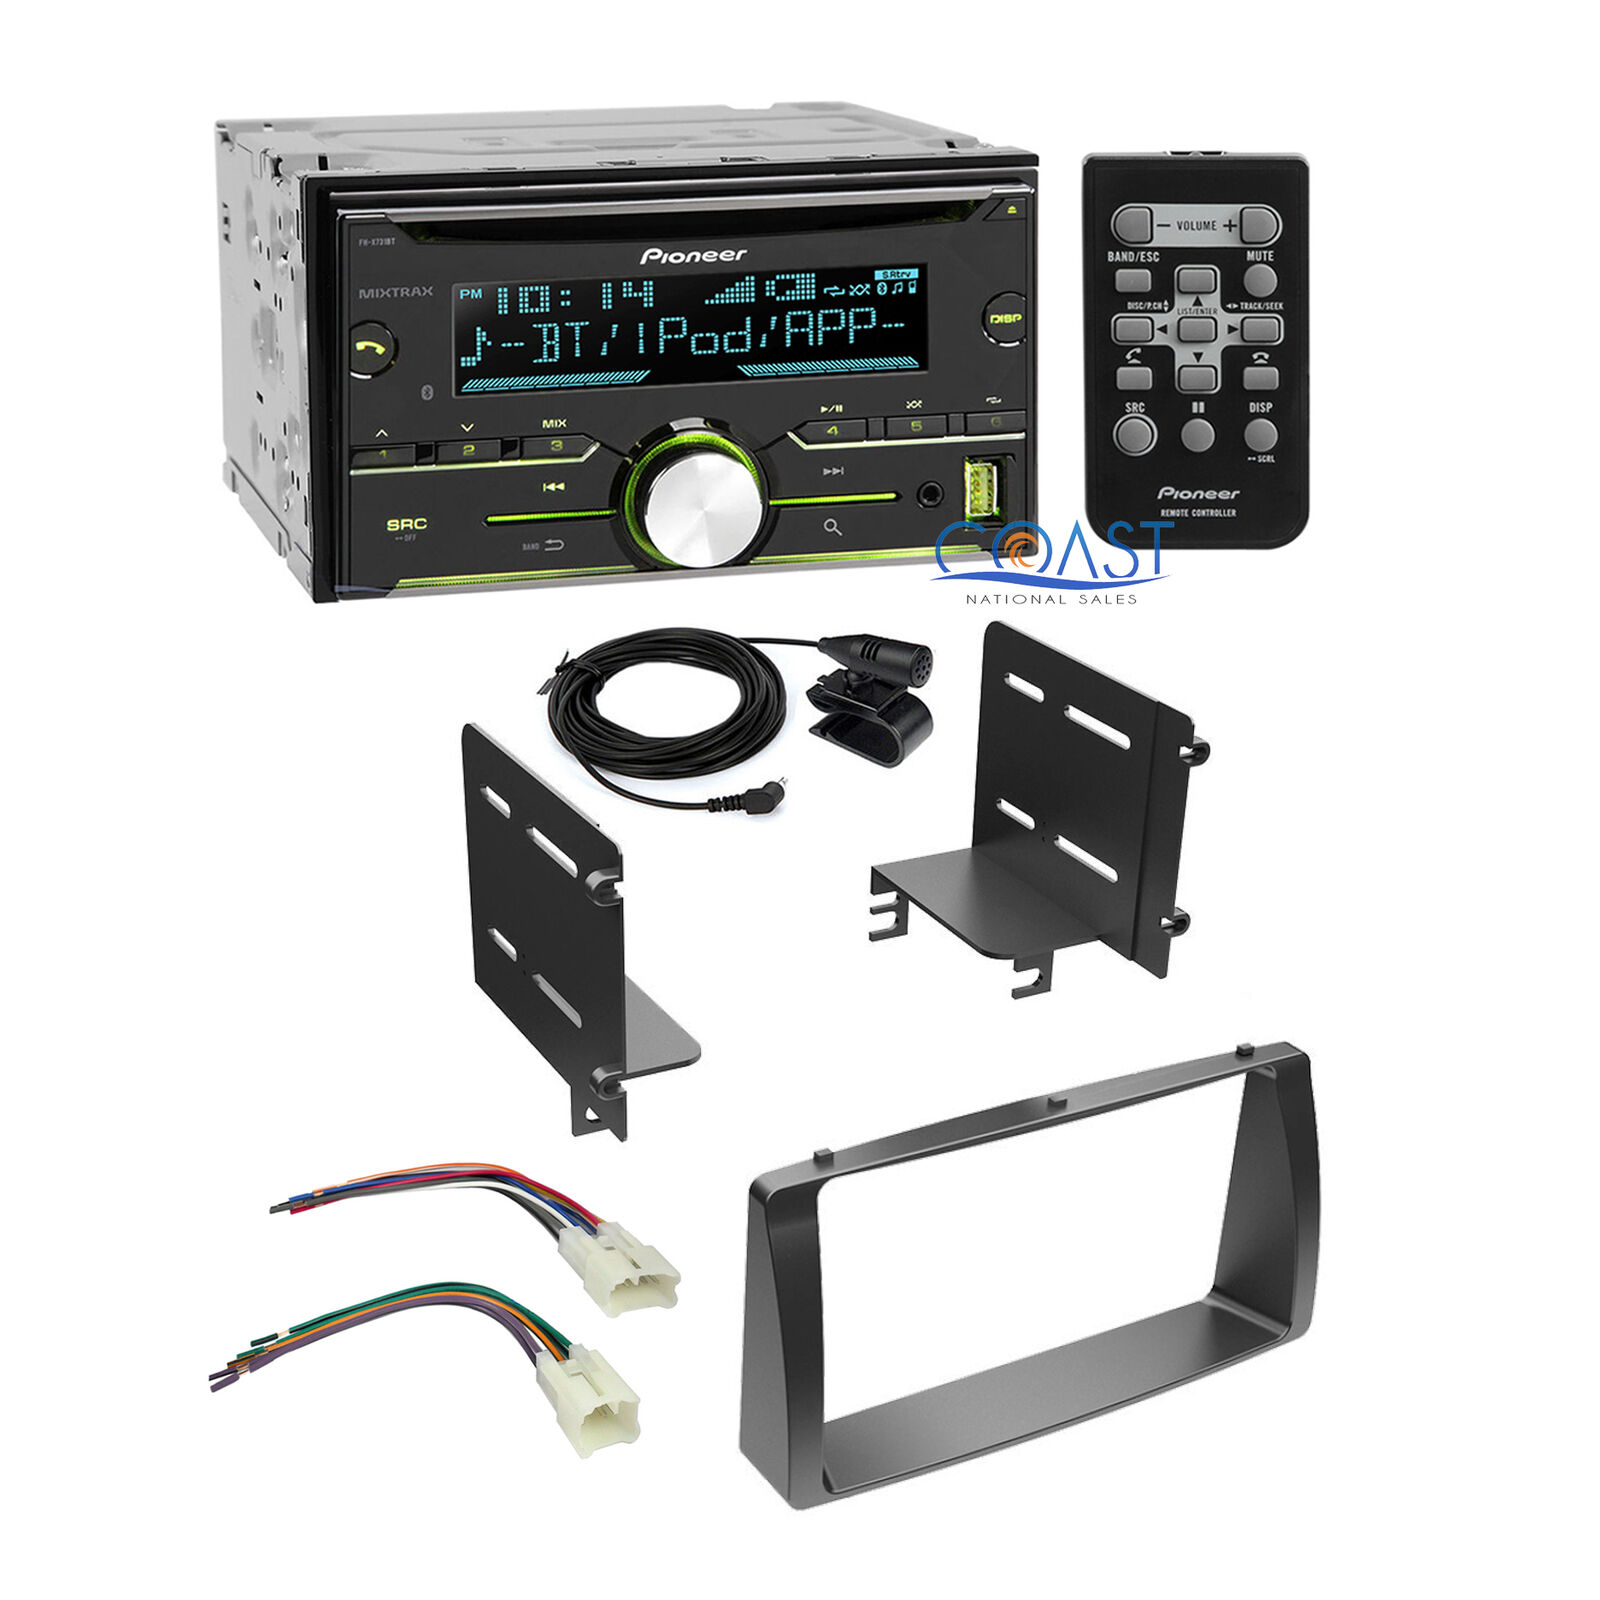 Stereo Toyota Harness 1223 Wire Center Flickerledcircuit Pioneer Radio Double Din Dash Kit For 03 08 Rh Picclick Com Ford Wiring Car